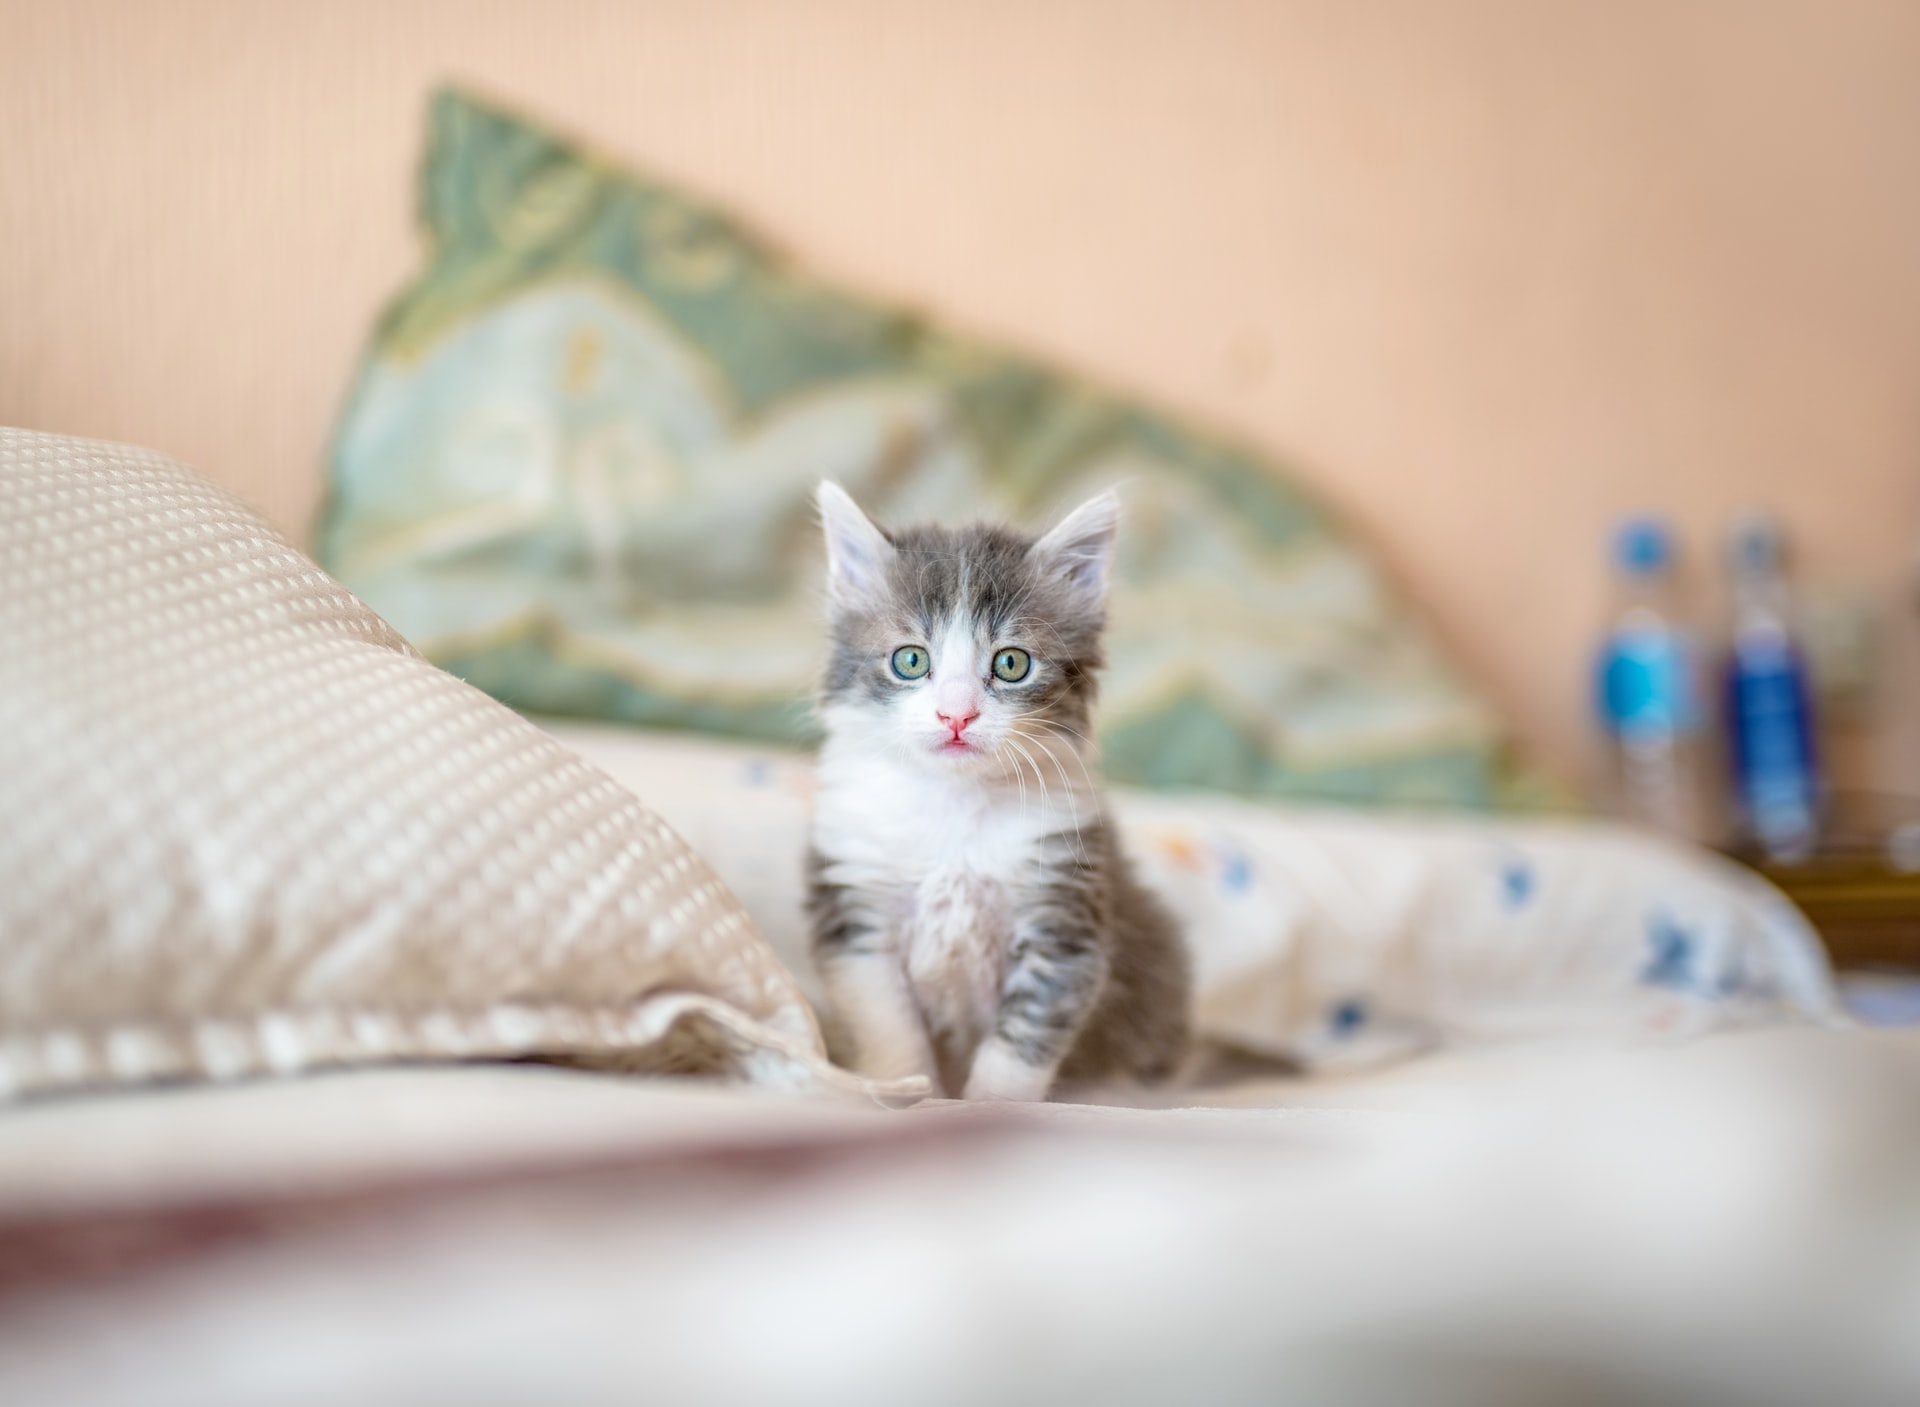 Teacup cat standing on bed